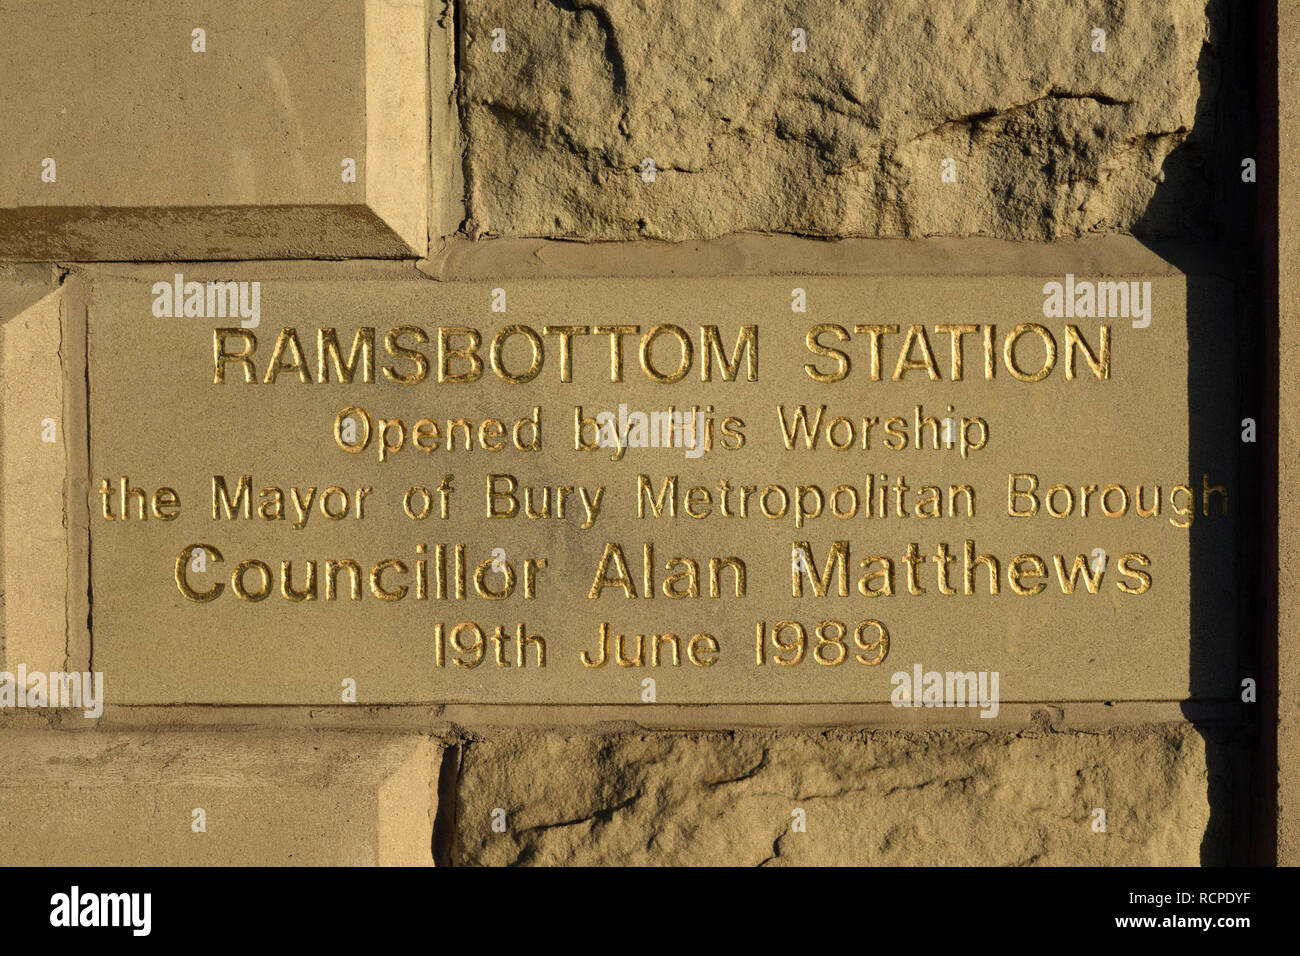 Ramsbottom heritage railway station date stone with gold lettering in lancashire uk - Stock Image